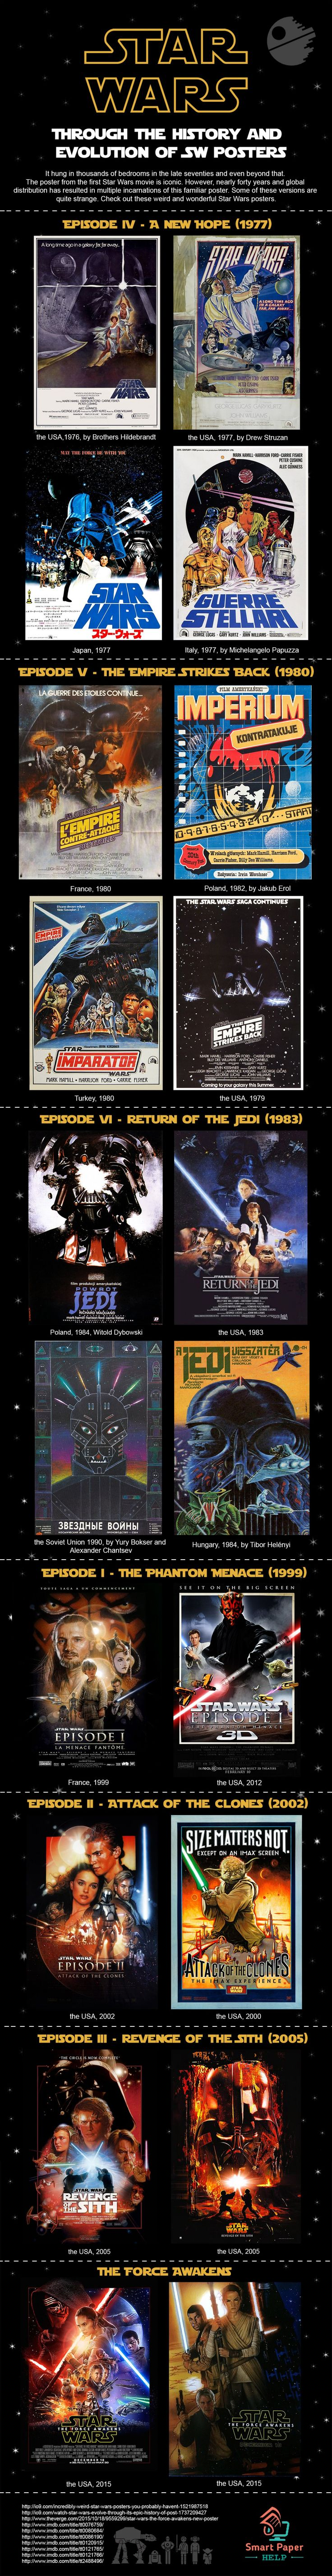 Star Wars: Through the Evolution of Posters #Infographic #infografía